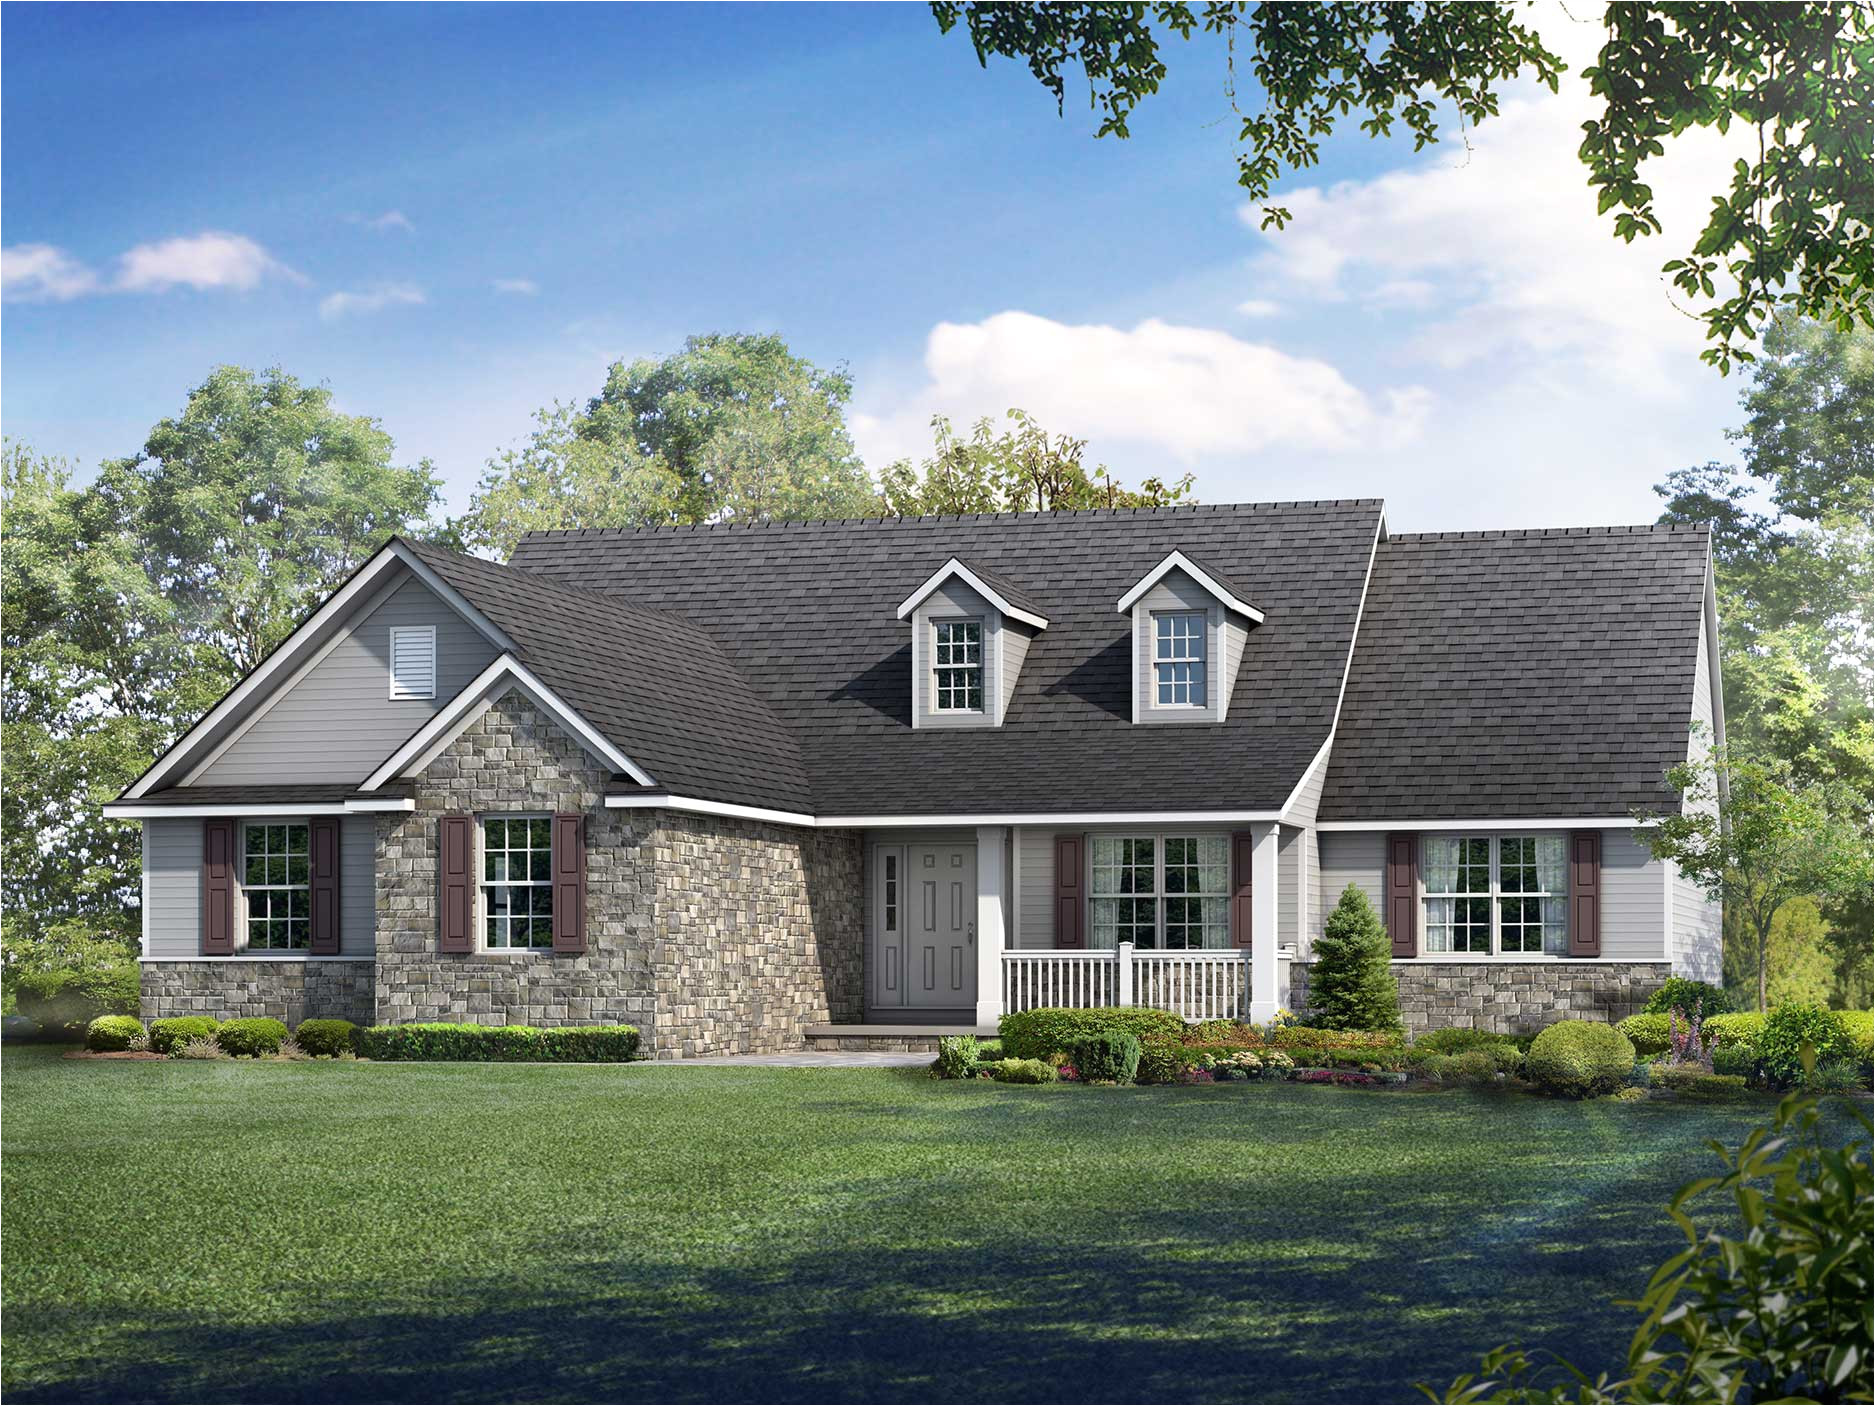 Wayne Homes House Plans Ranch House Floor Plans the Camden Wayne Homes